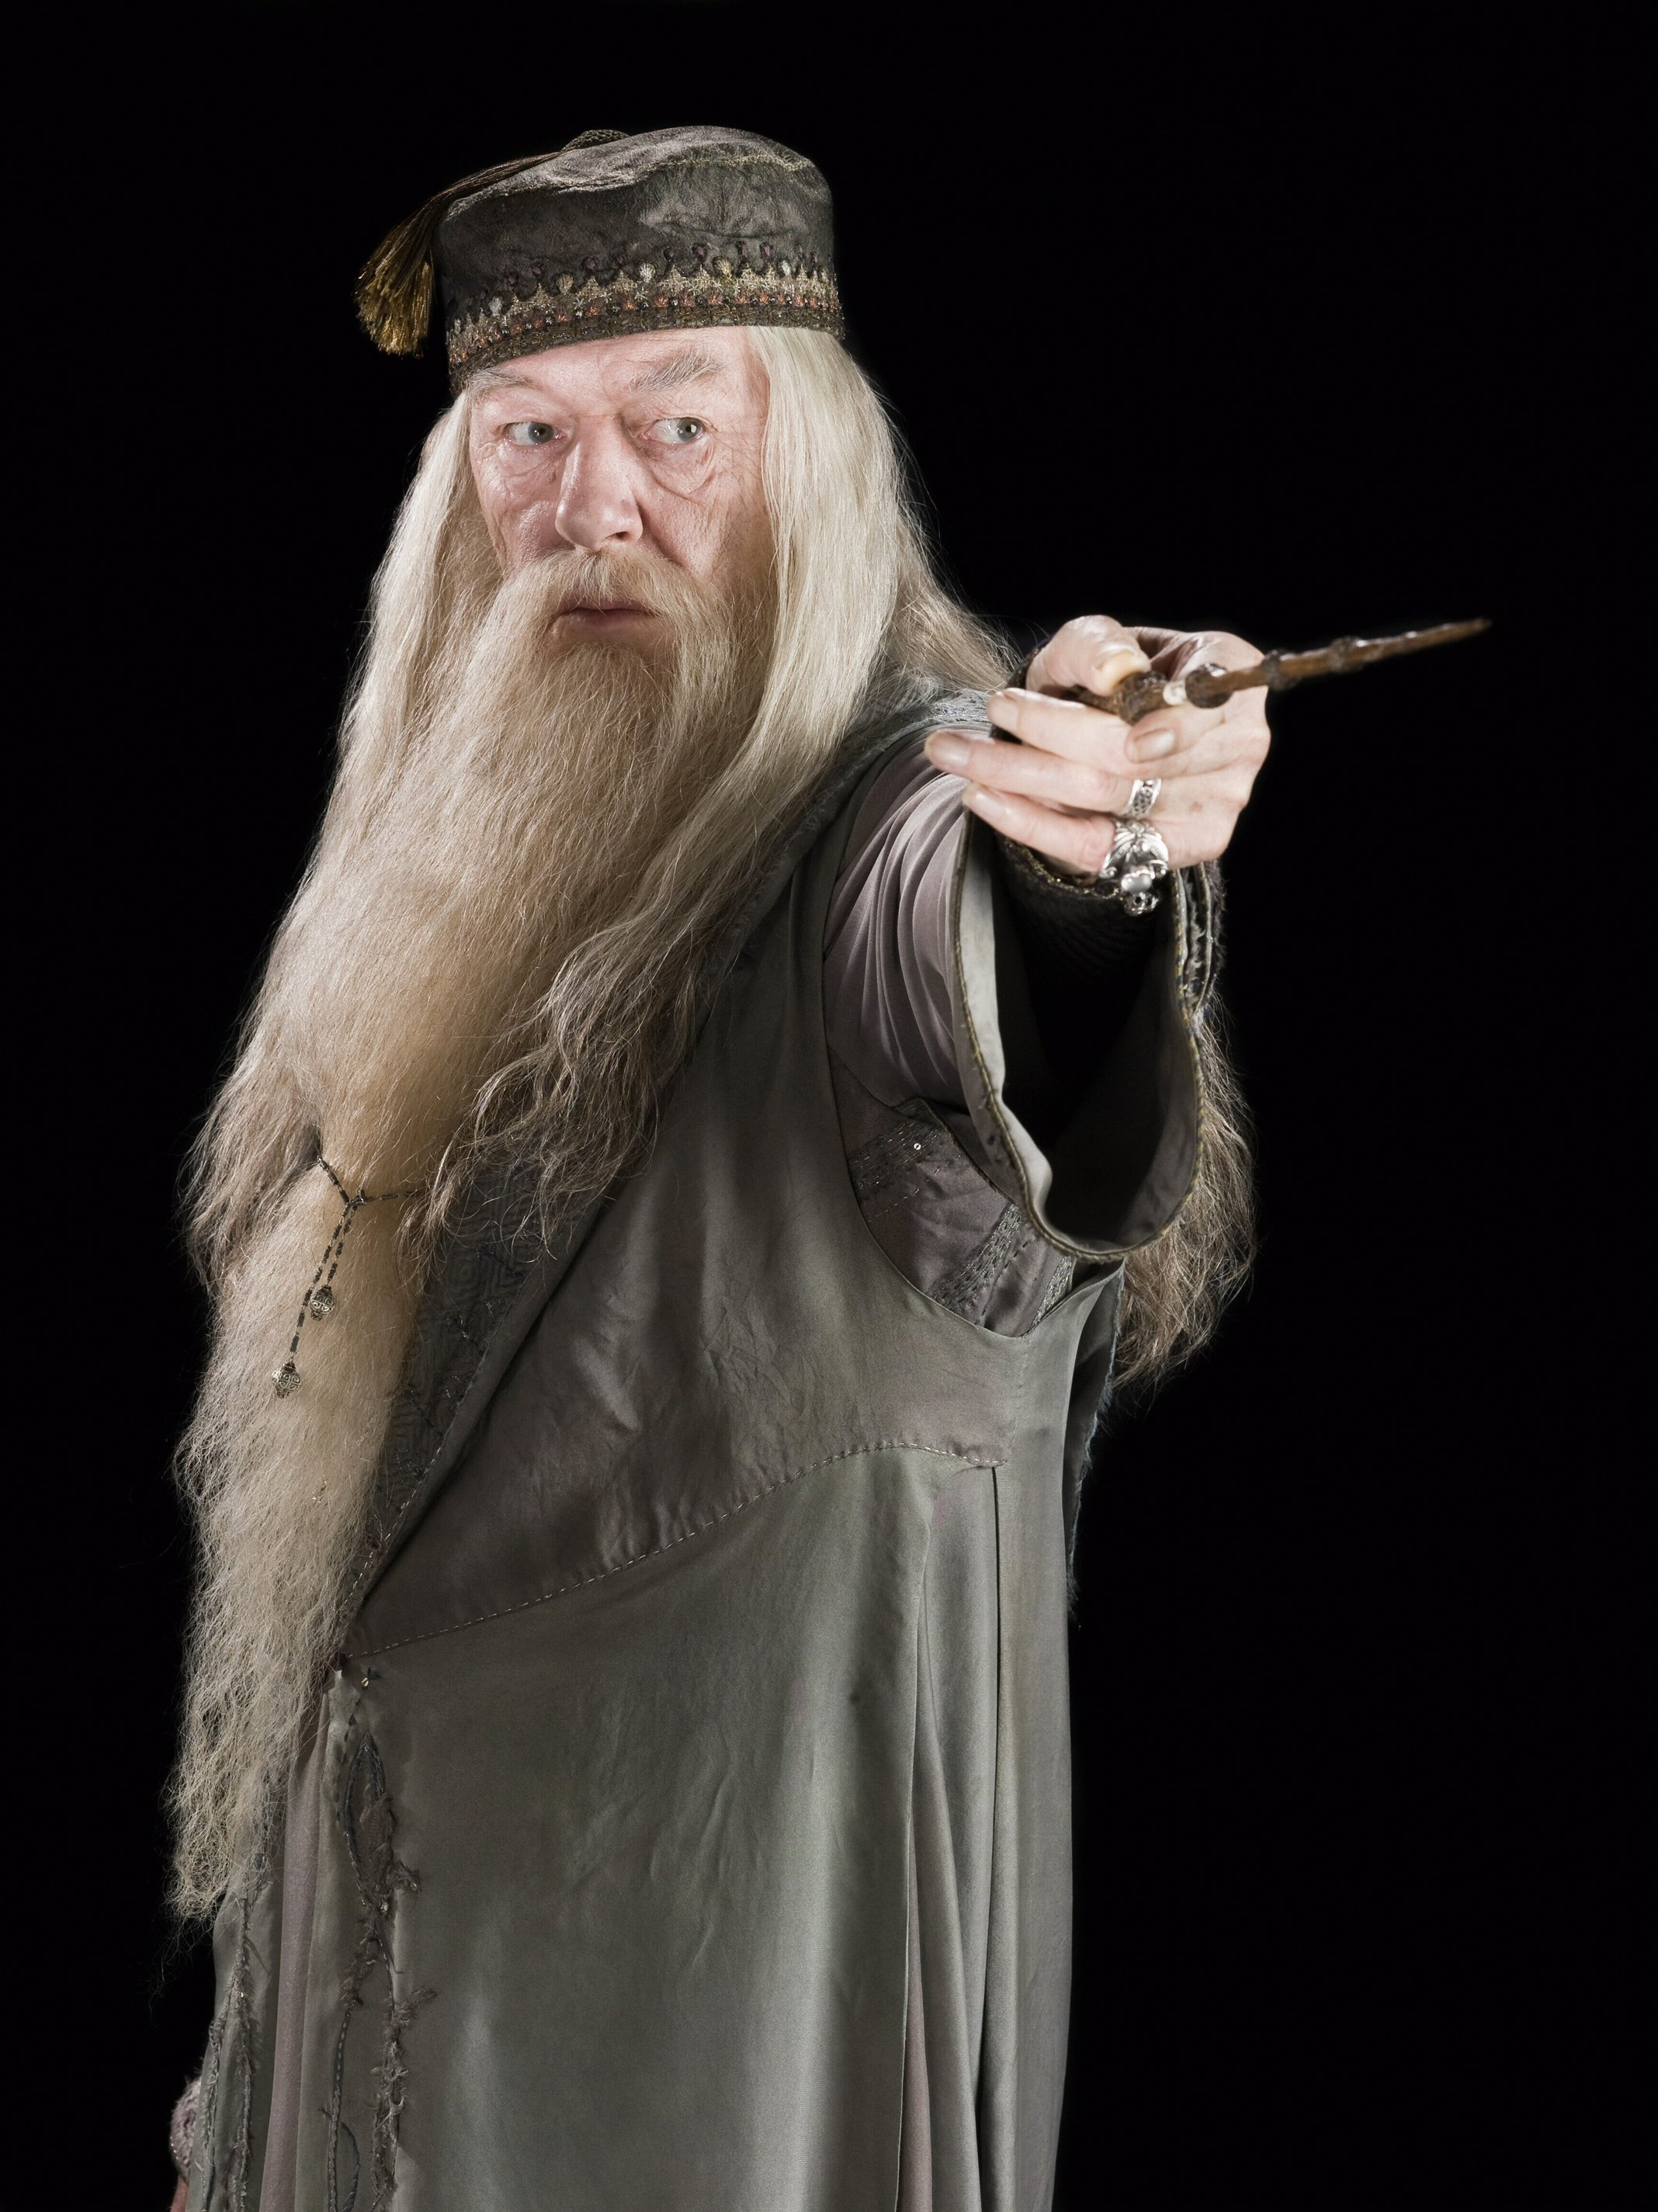 http://images3.wikia.nocookie.net/harrypotter/images/4/40/Albus_Dumbledore_(HBP_promo)_3.jpg